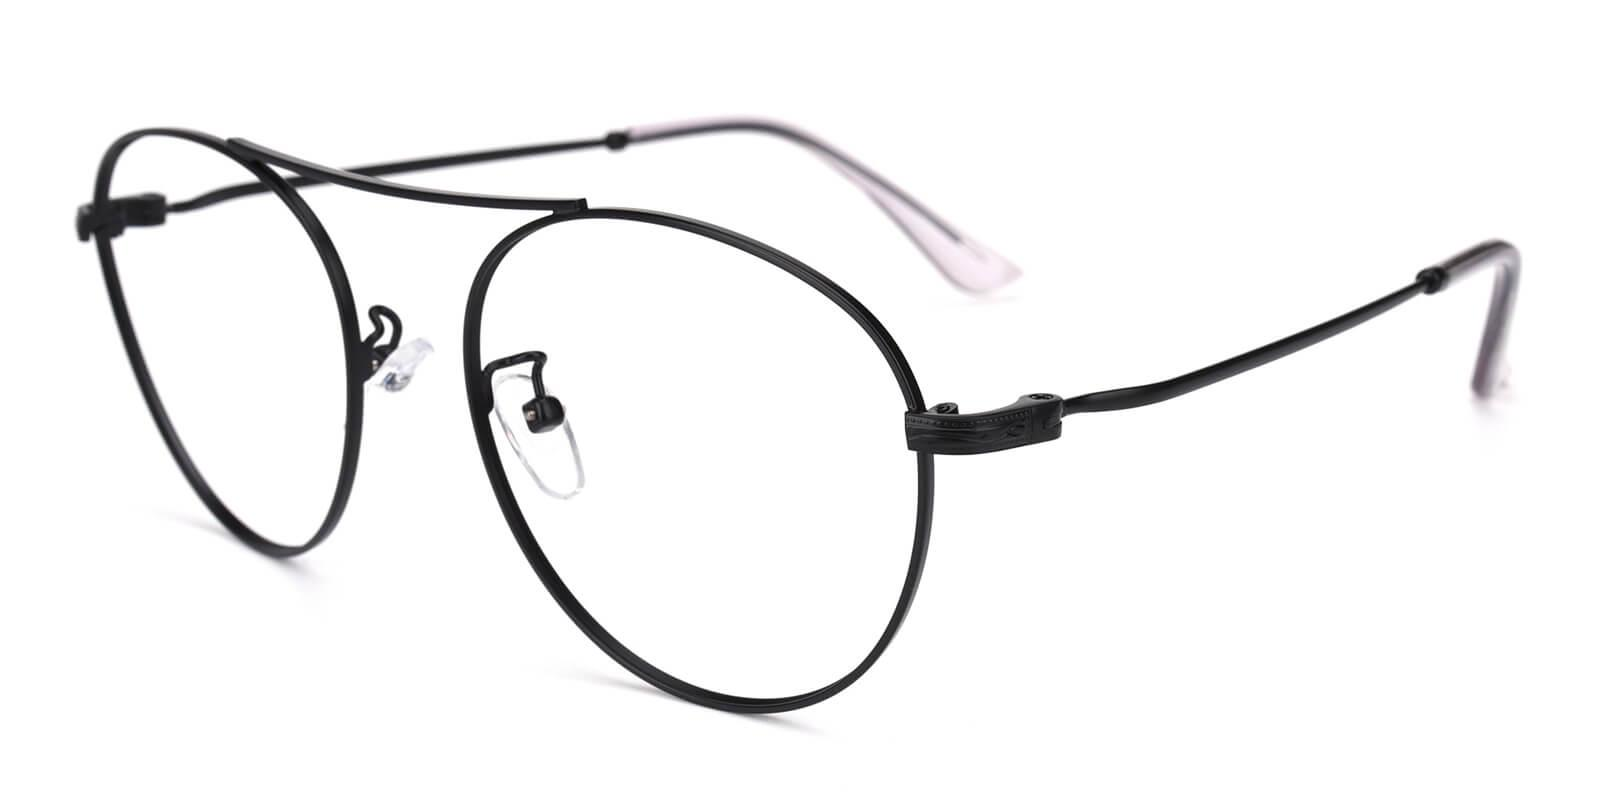 Fleybean-Black-Aviator-Metal-Eyeglasses-additional1